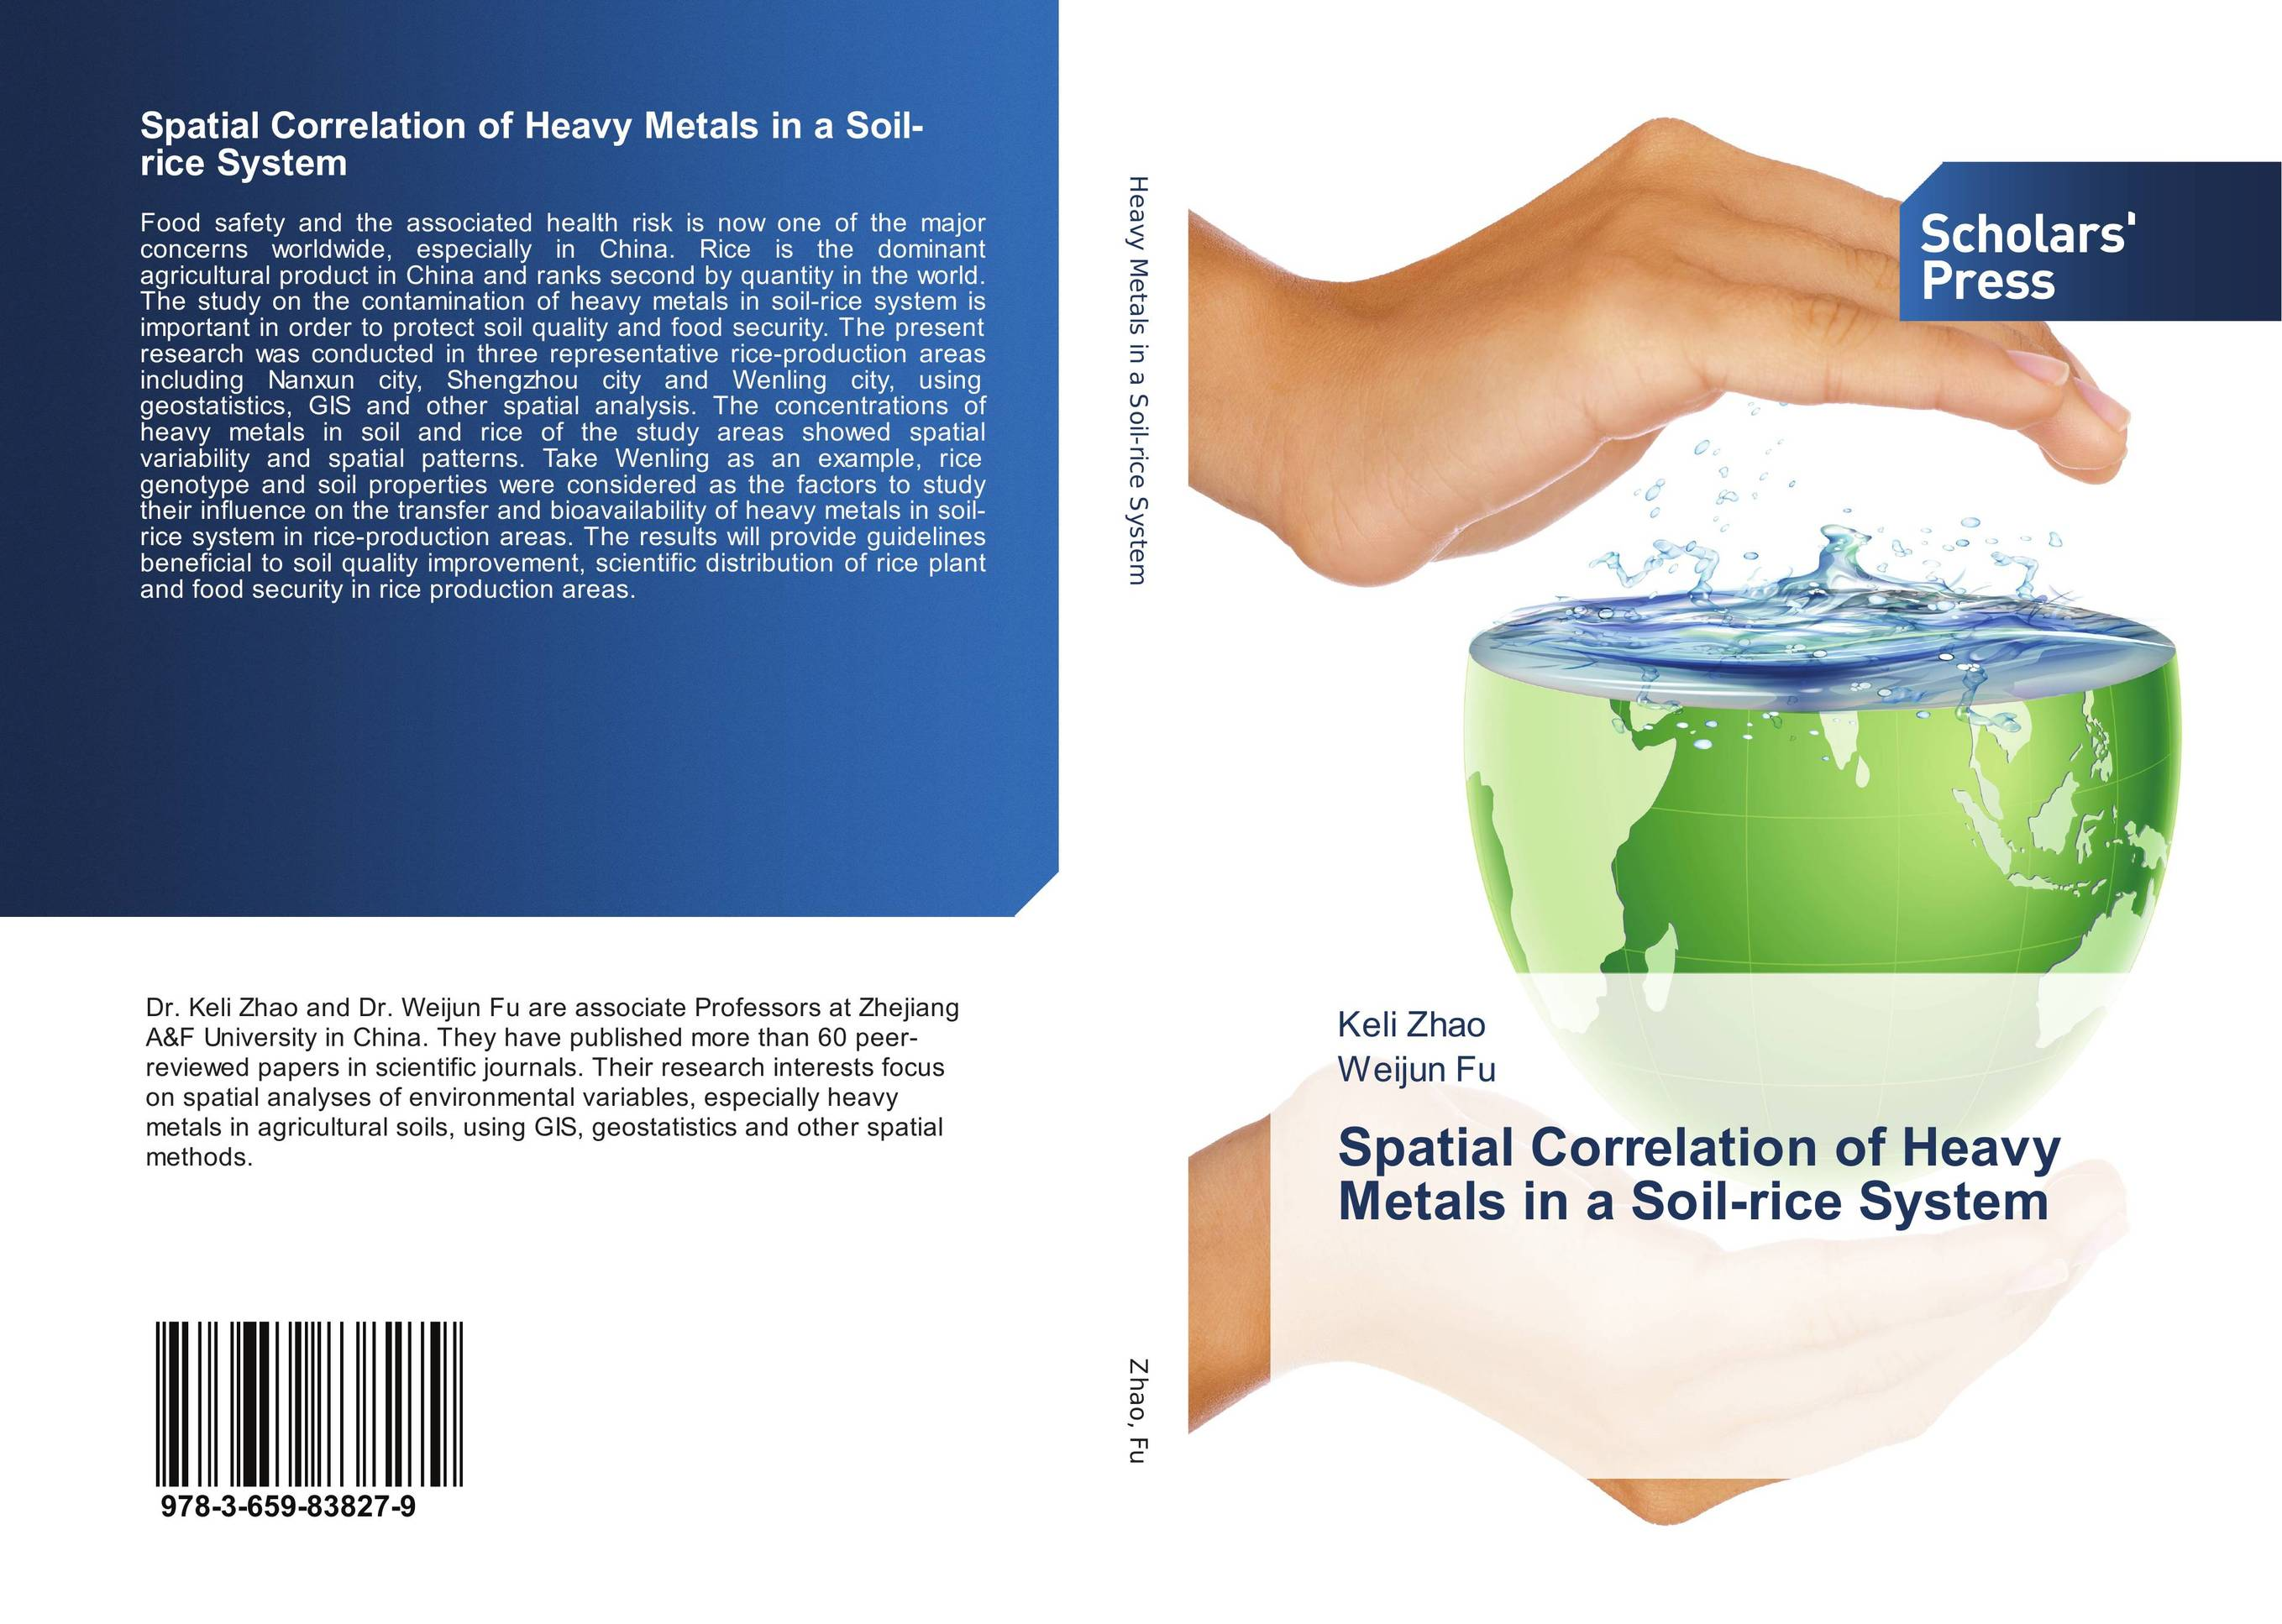 Spatial Correlation of Heavy Metals in a Soil-rice System marwan a ibrahim effect of heavy metals on haematological and testicular functions